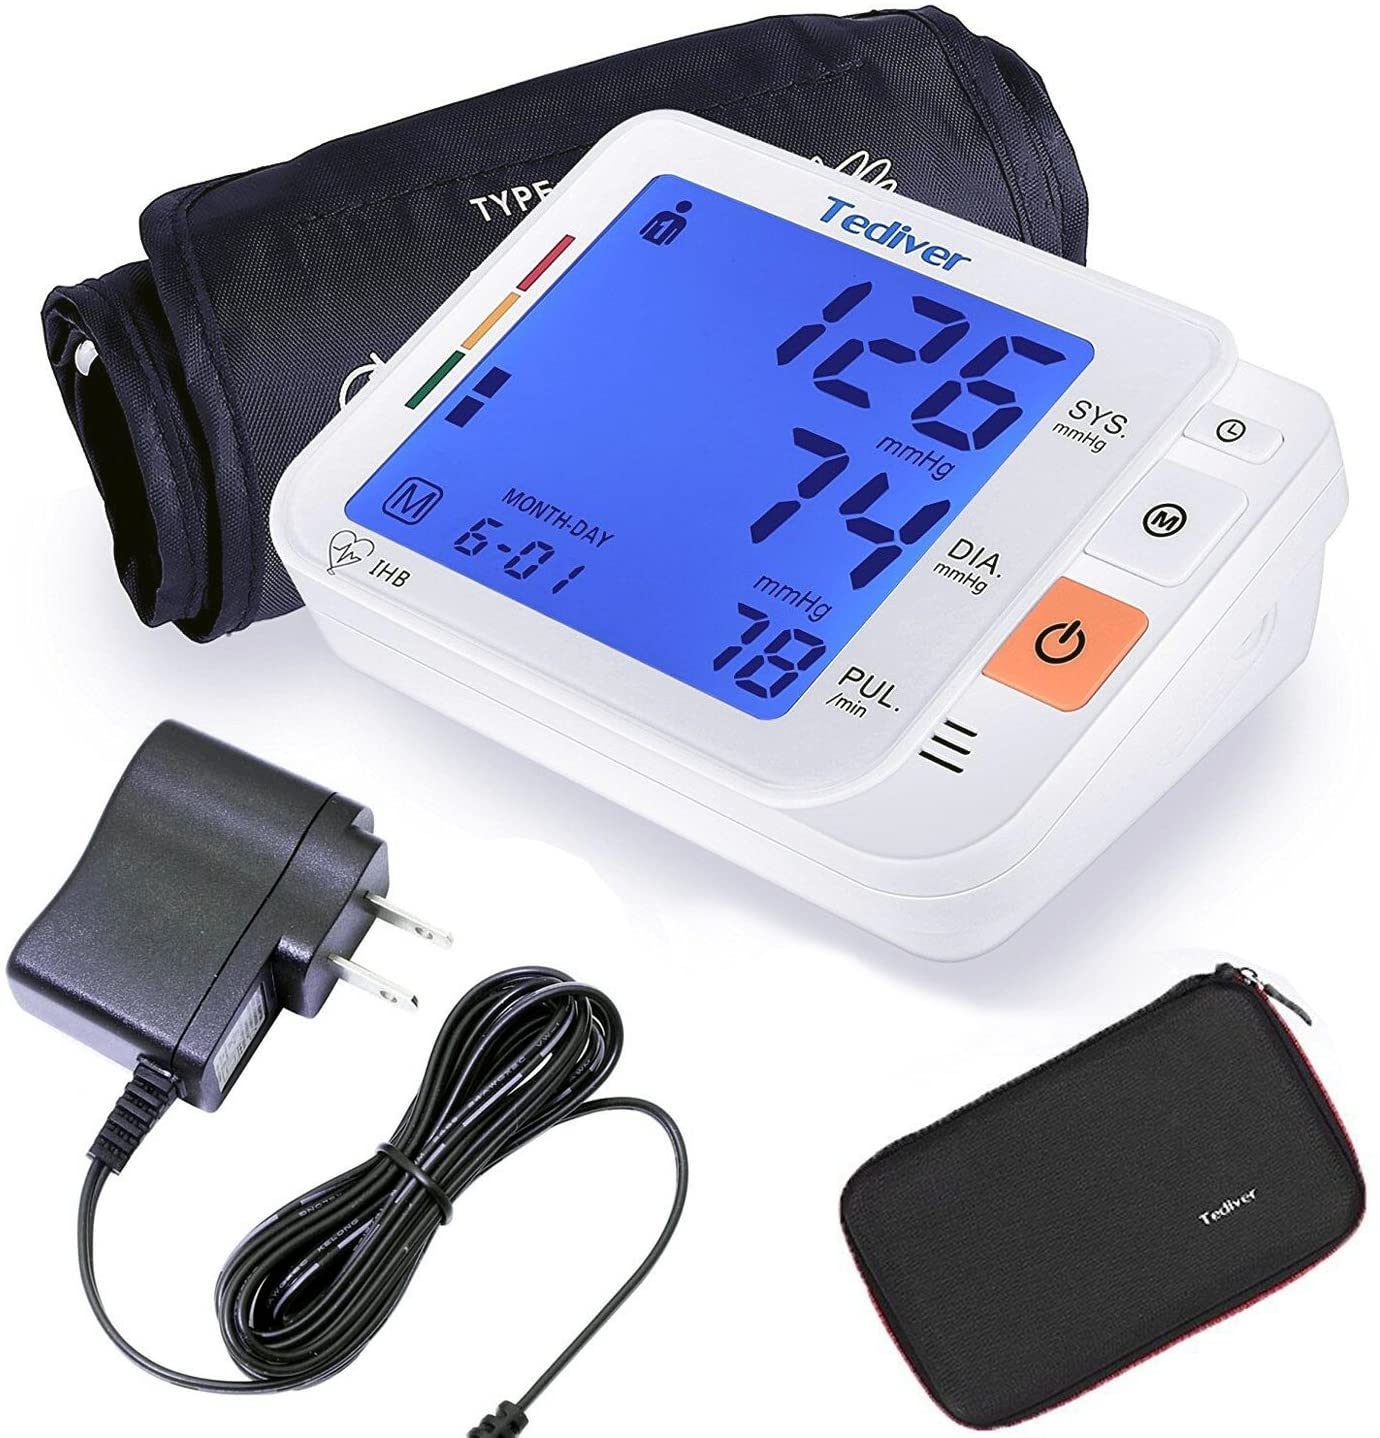 Tediver Digital Blood Pressure Monitor, Large Cuff 0.7-1.3 Feet – Automatic Upper Arm Blood Pressure Cuff Sets with Adapter and Device Case, Backlight LCD screen, 2 Year Warranty